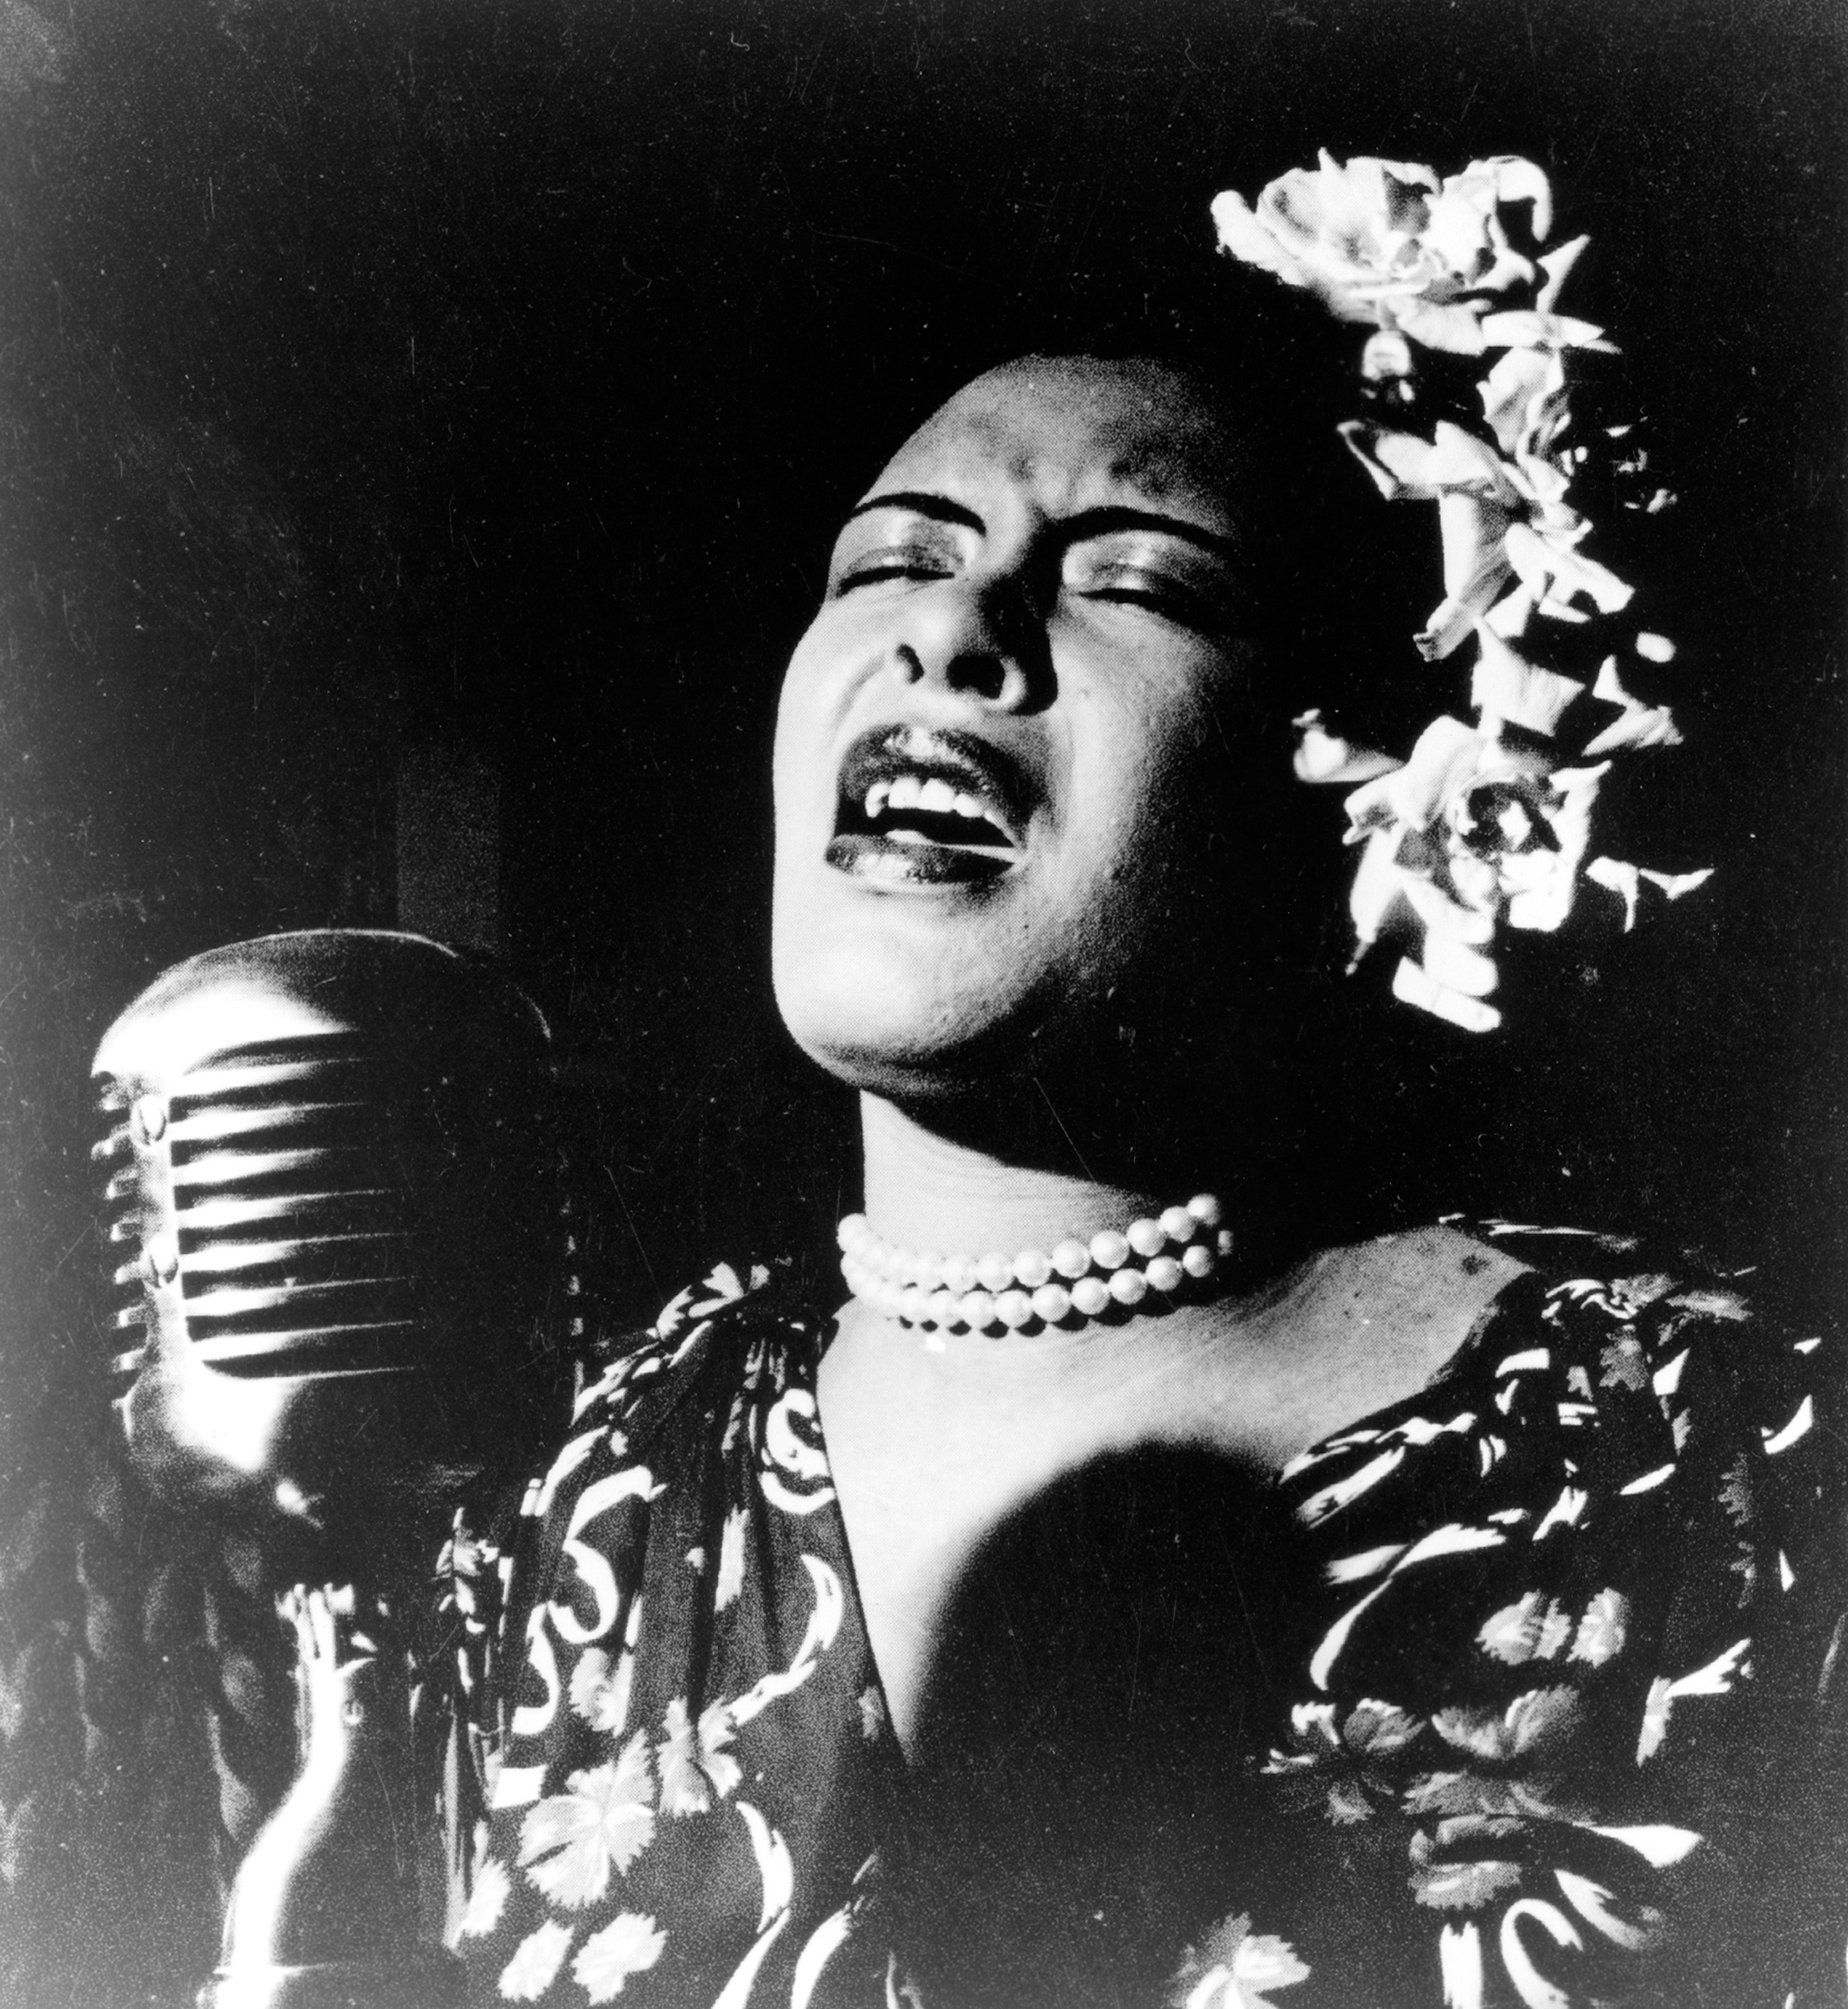 Billie holiday singing into microphone